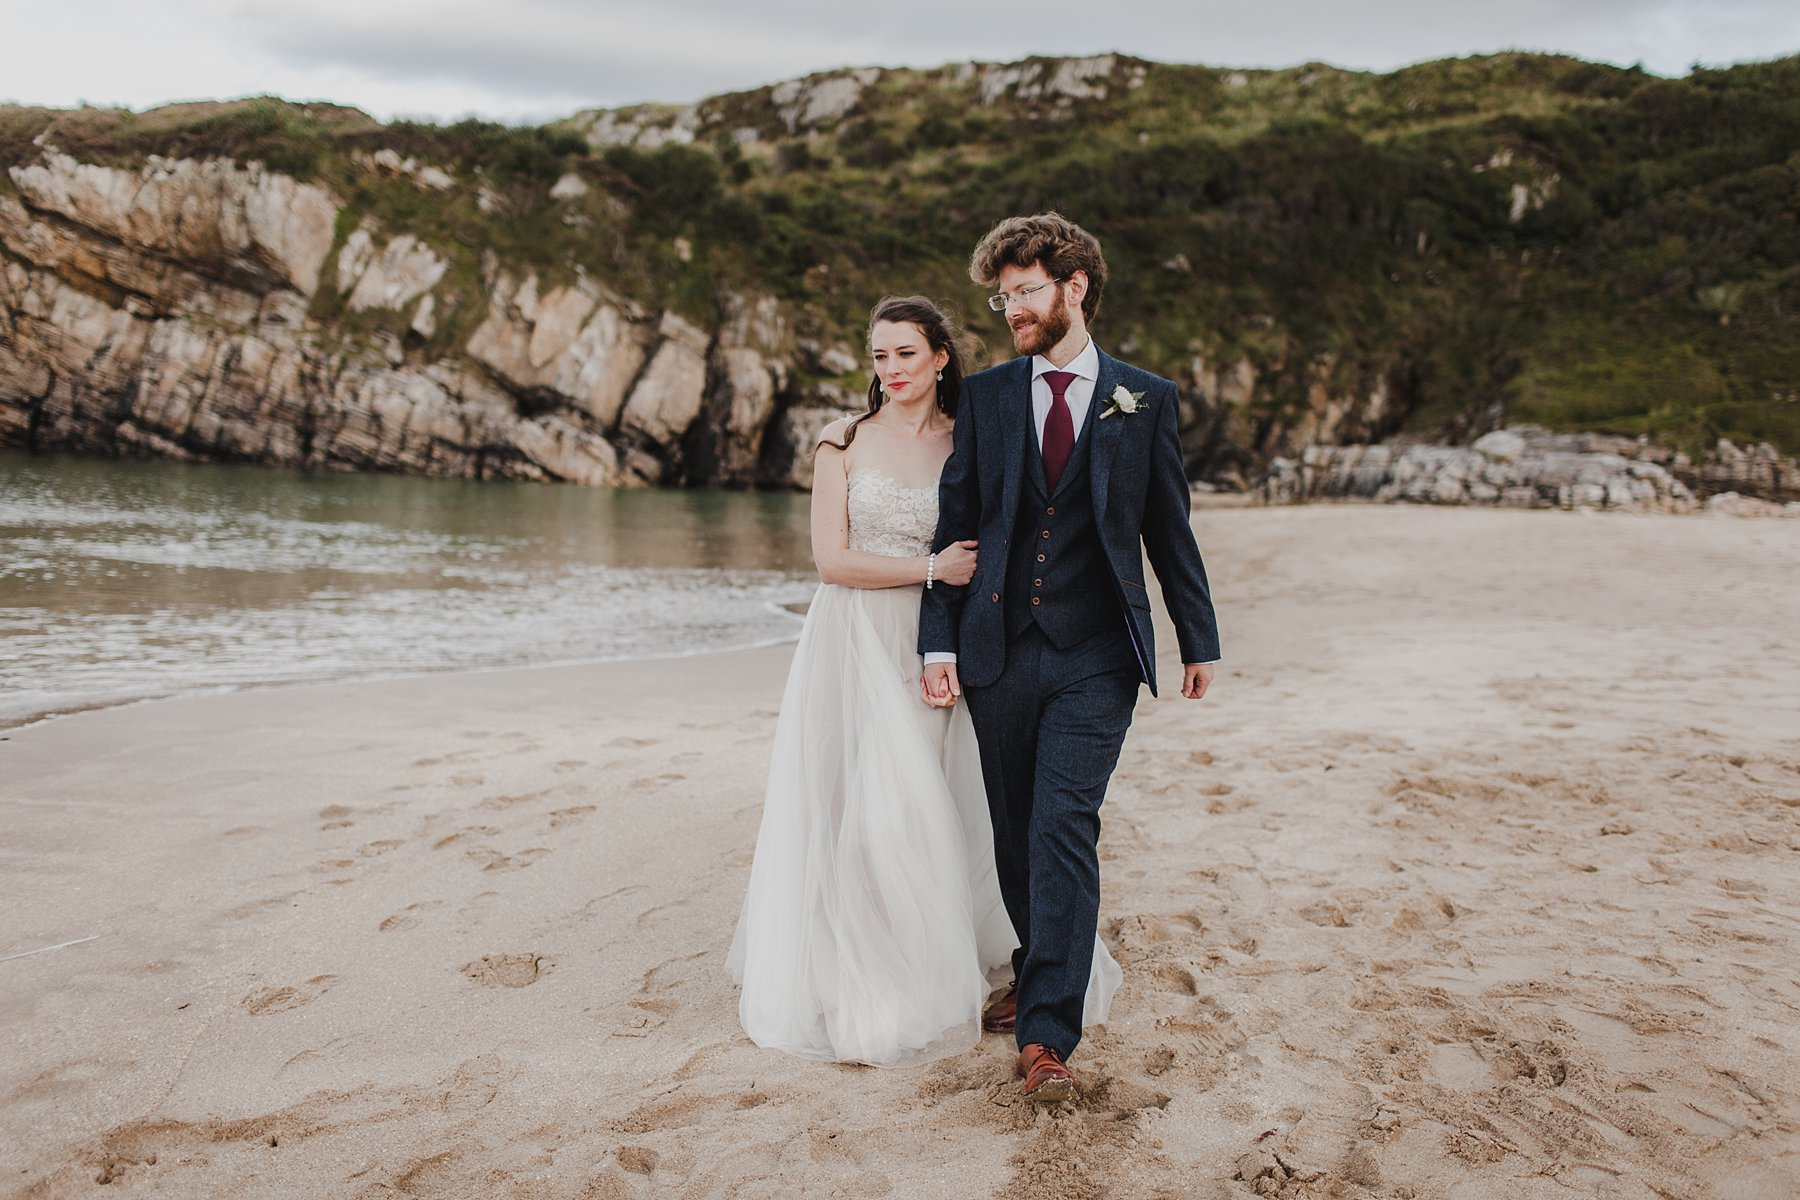 hornhead_donegak_elopement_weddings_0067